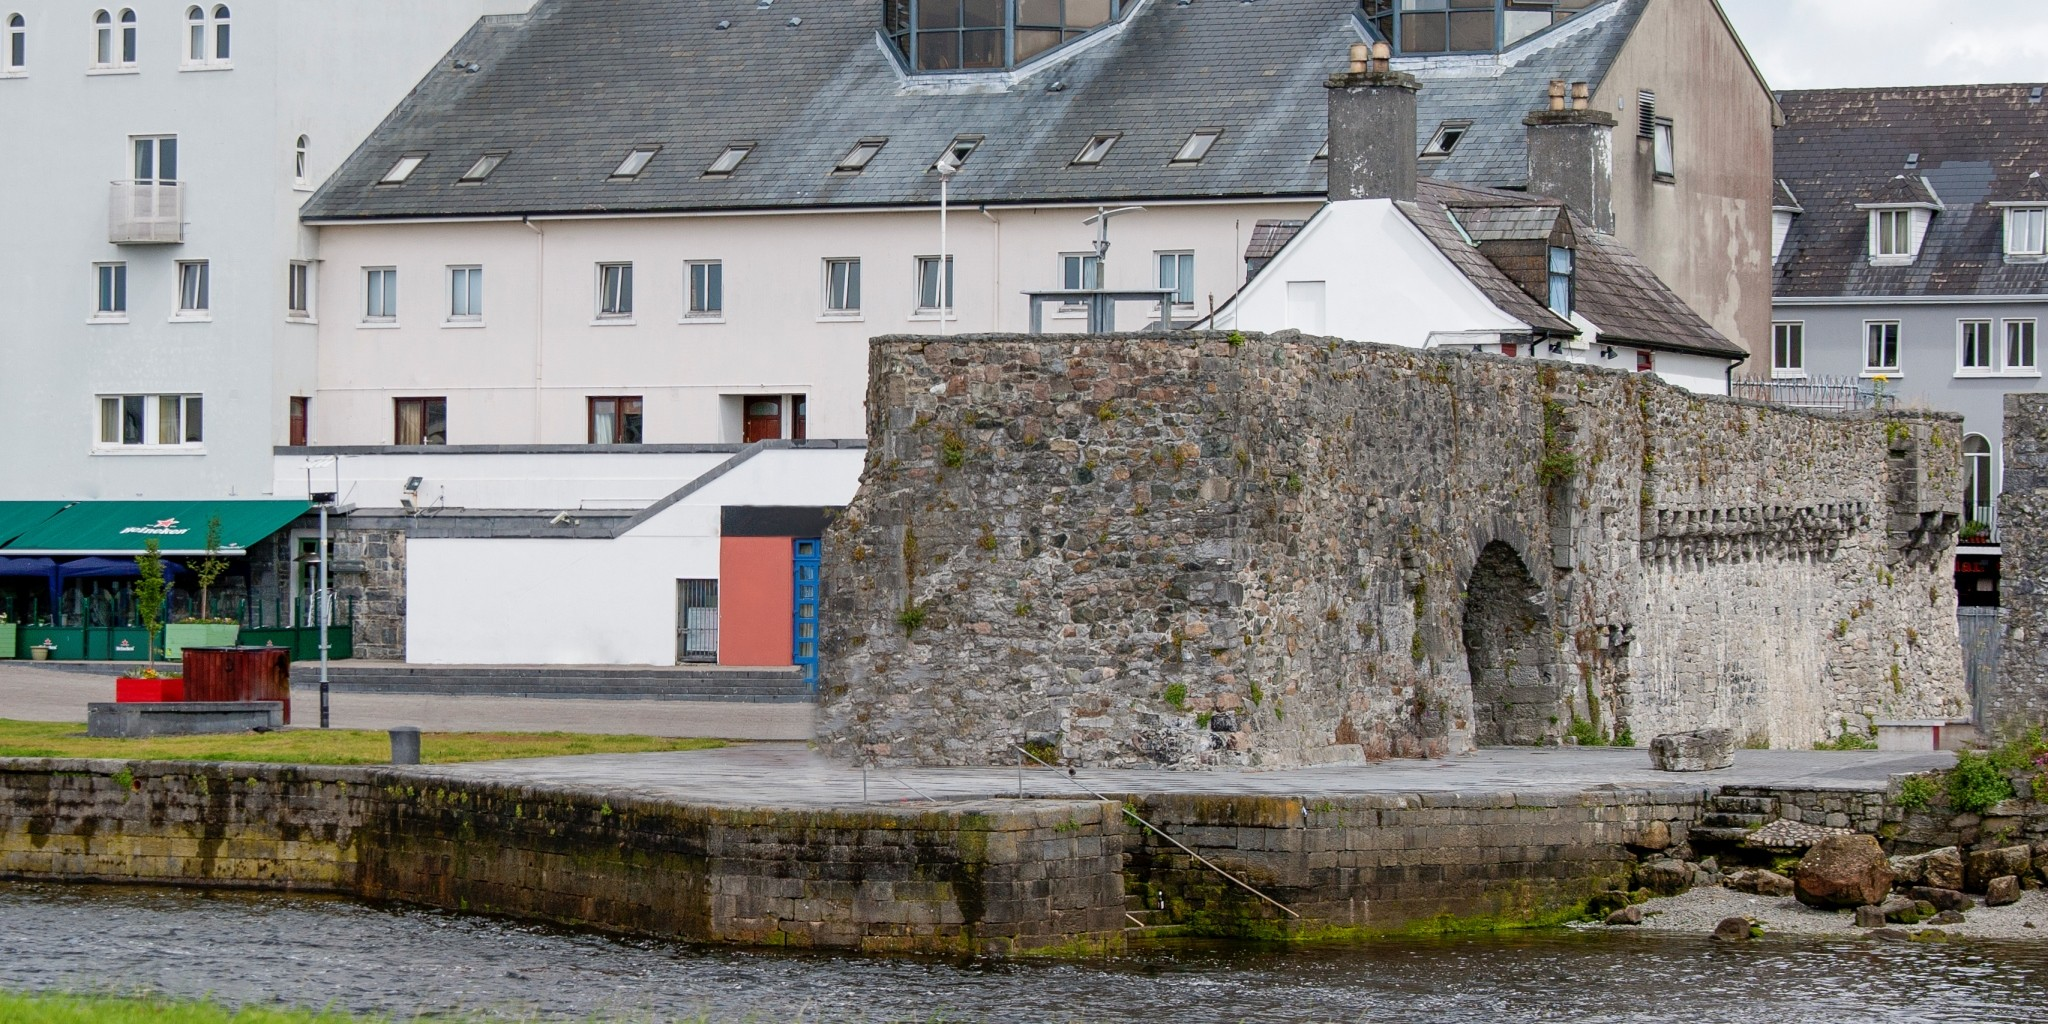 Spanish Arch Galway City, Spanish Arch Galway | Things to Do in Galway Ireland